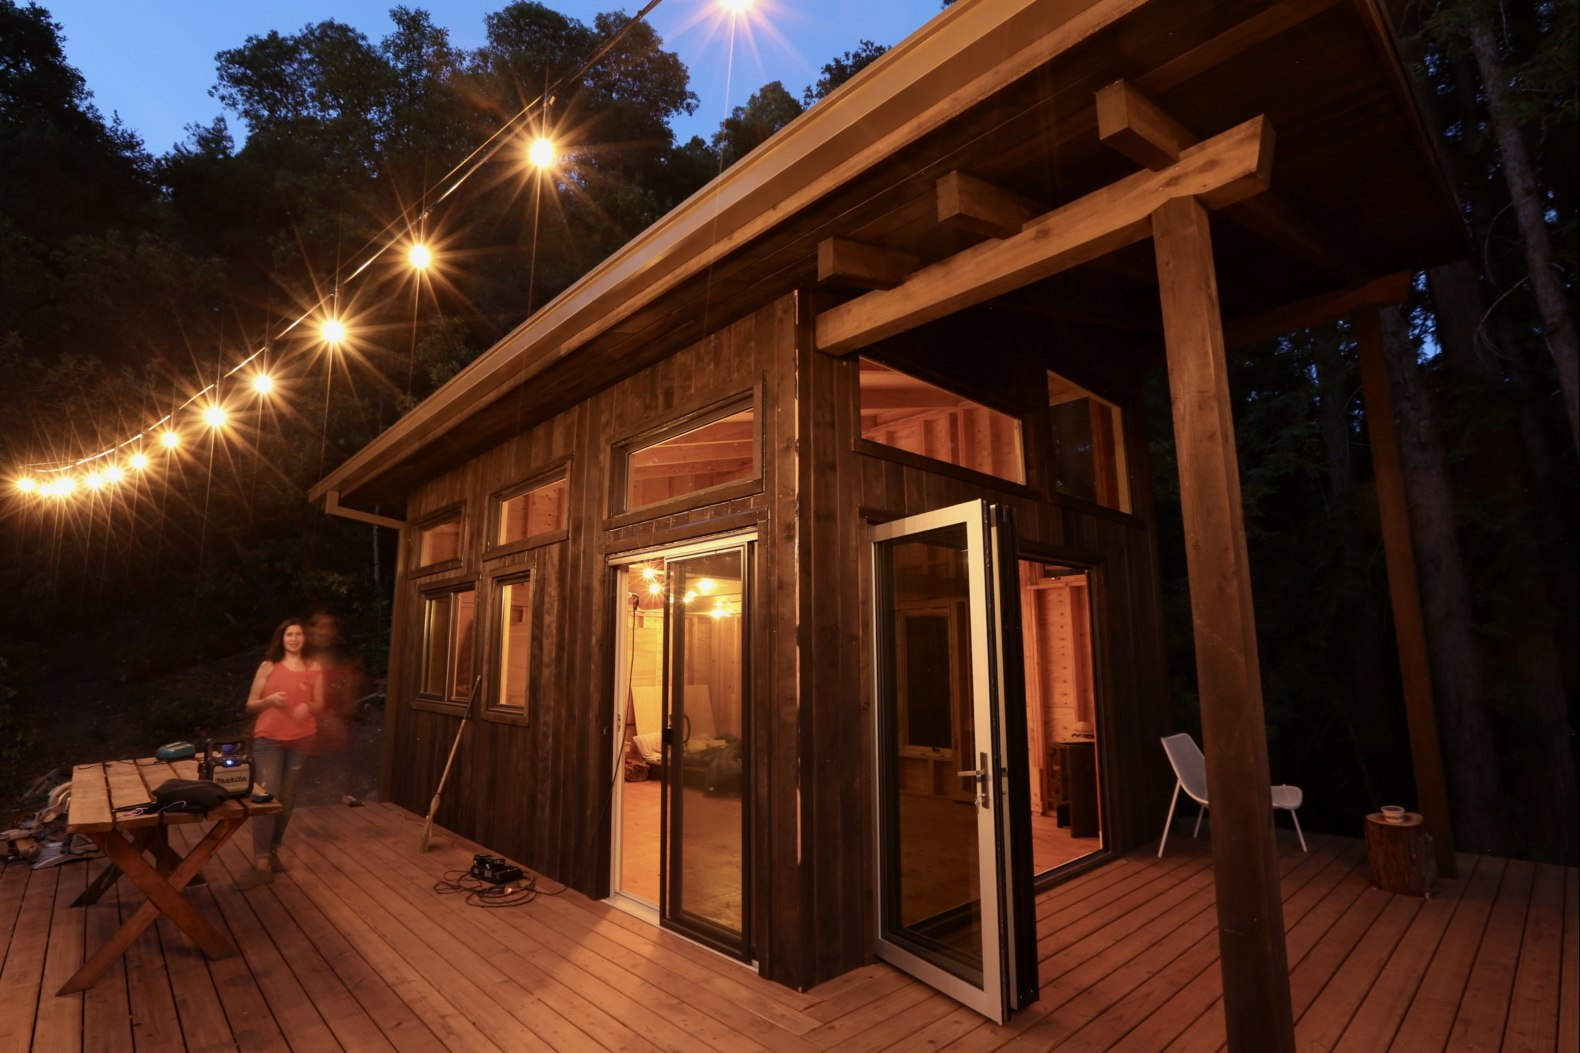 Group of friends build a DIY cabin retreat, complete with suspended tree decks